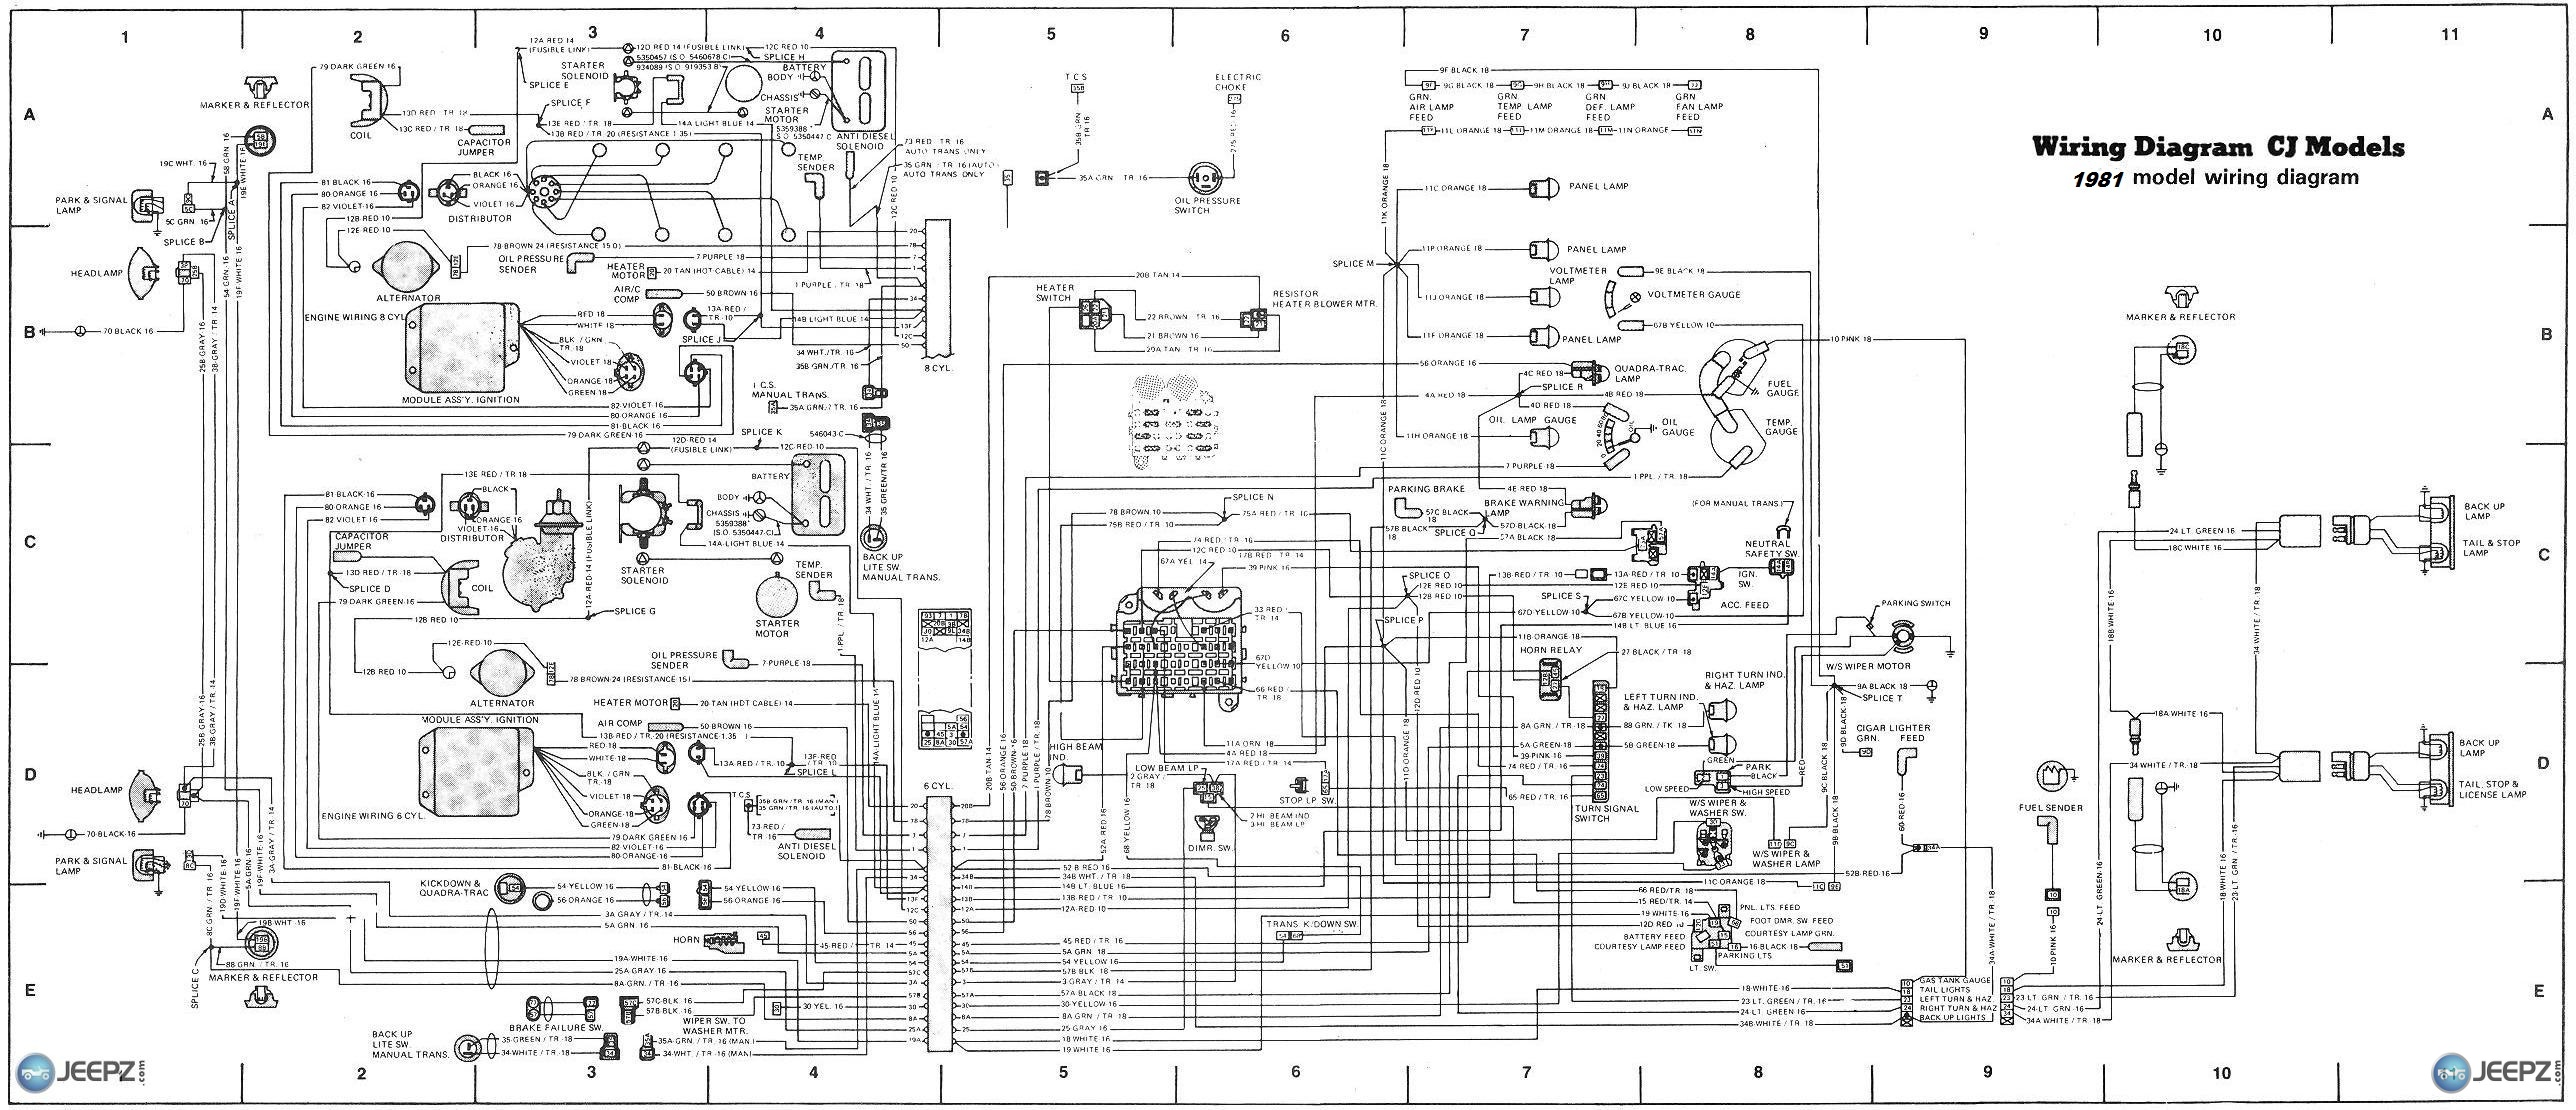 Peachy Cj7 Painless Wiring Diagram Online Wiring Diagram Wiring Digital Resources Remcakbiperorg